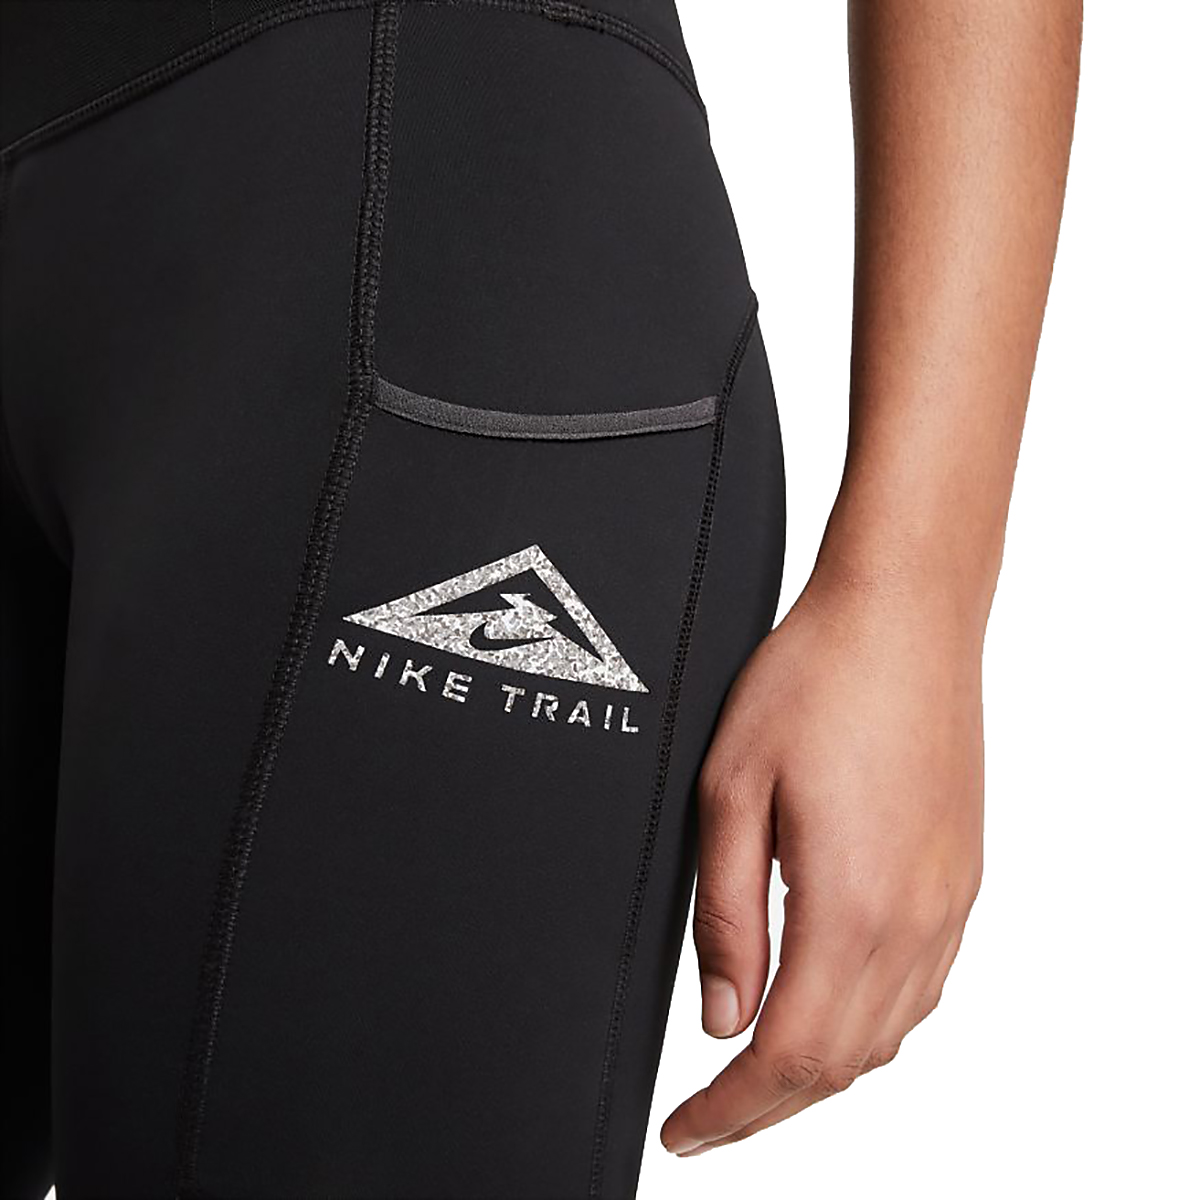 Women's Nike Epic Luxe Trail Running Tights, , large, image 4